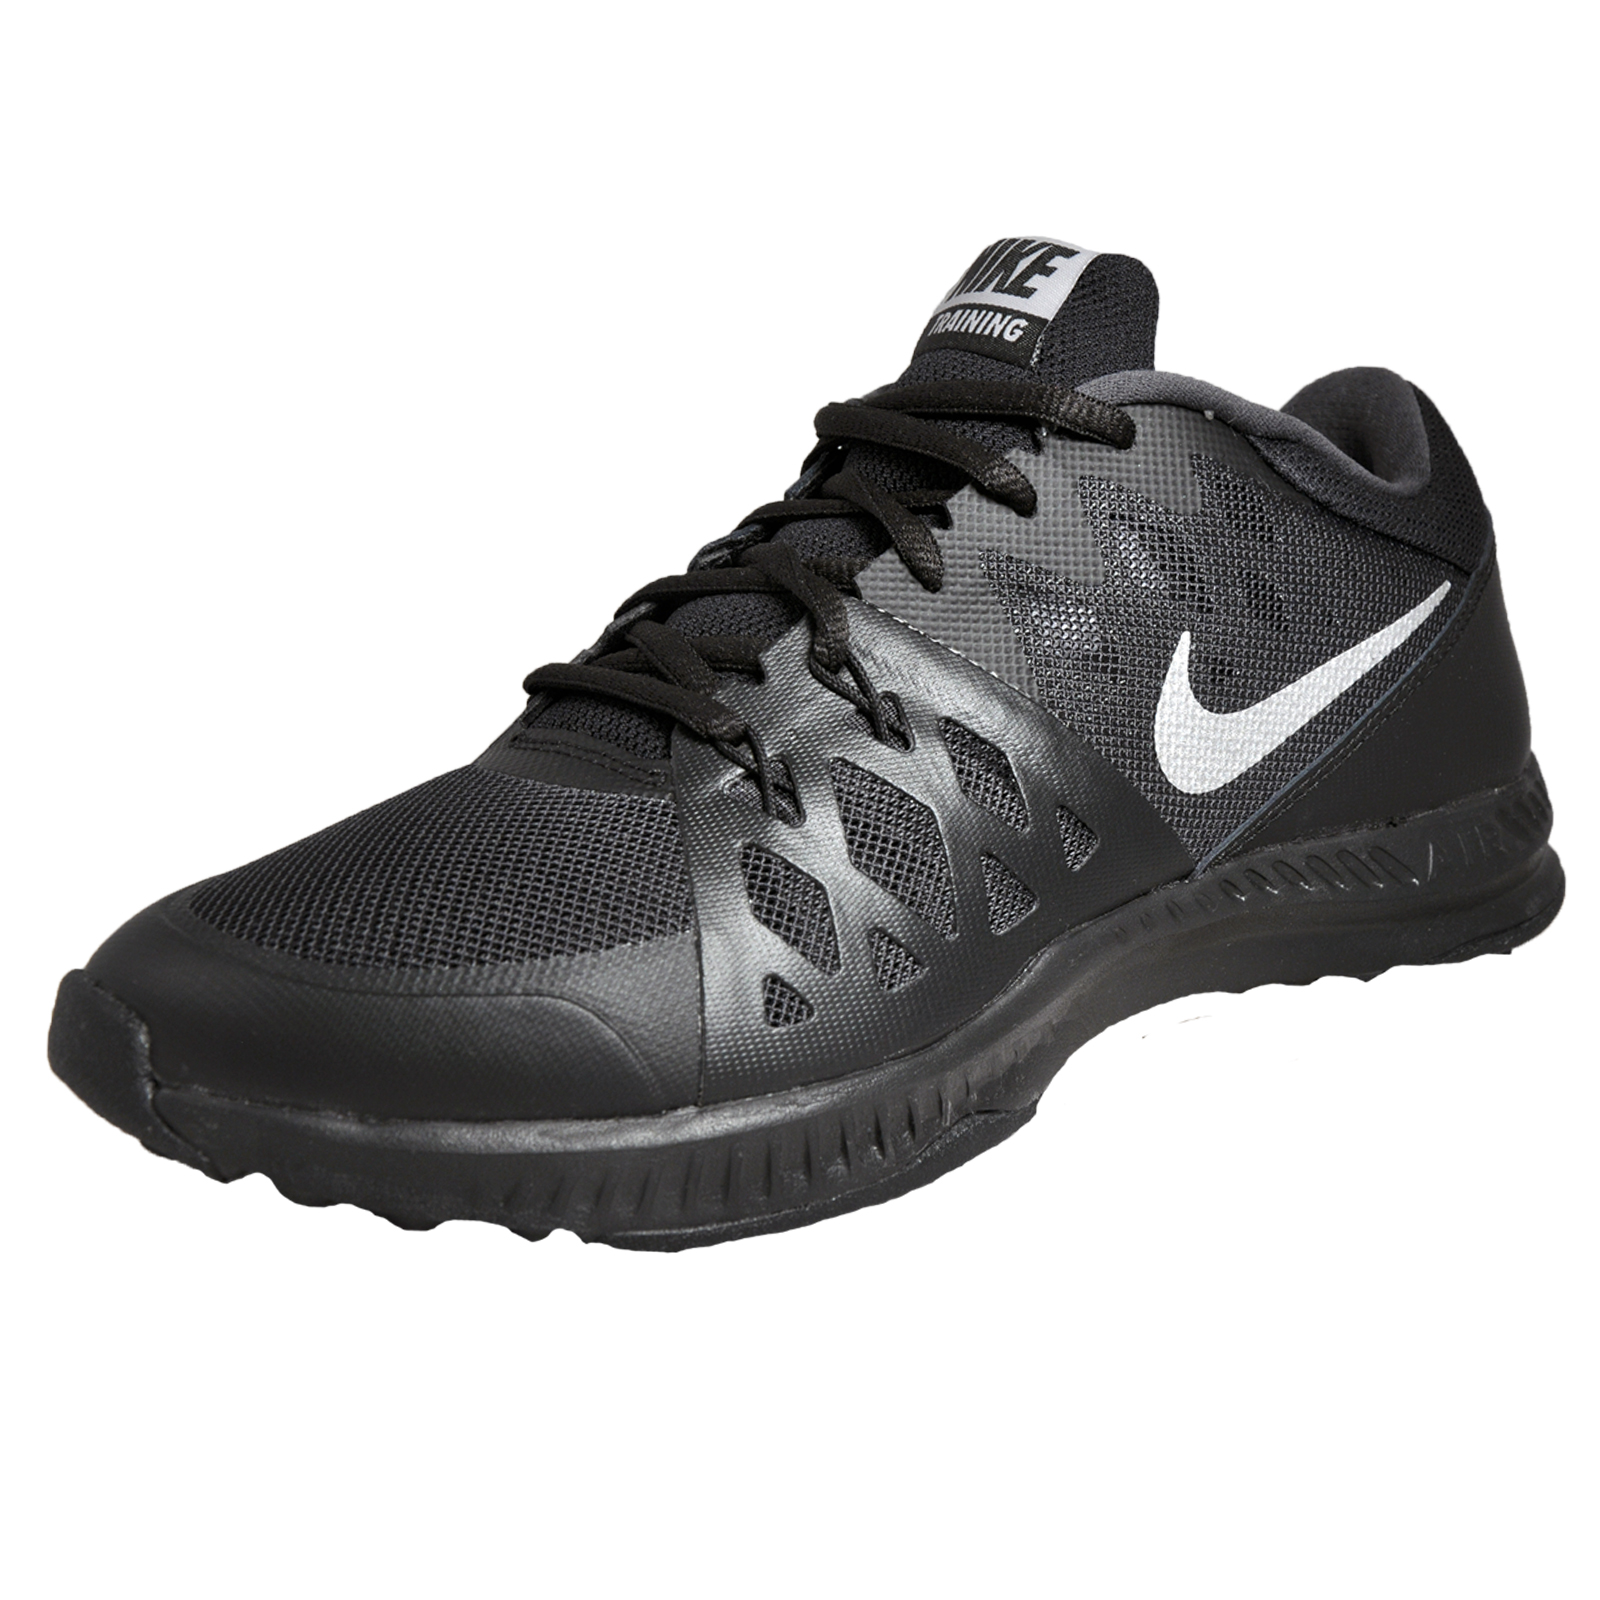 5184dca611 Details about Nike Air Epic Speed TR II Mens Running Shoes Fitness Gym  Trainers Black